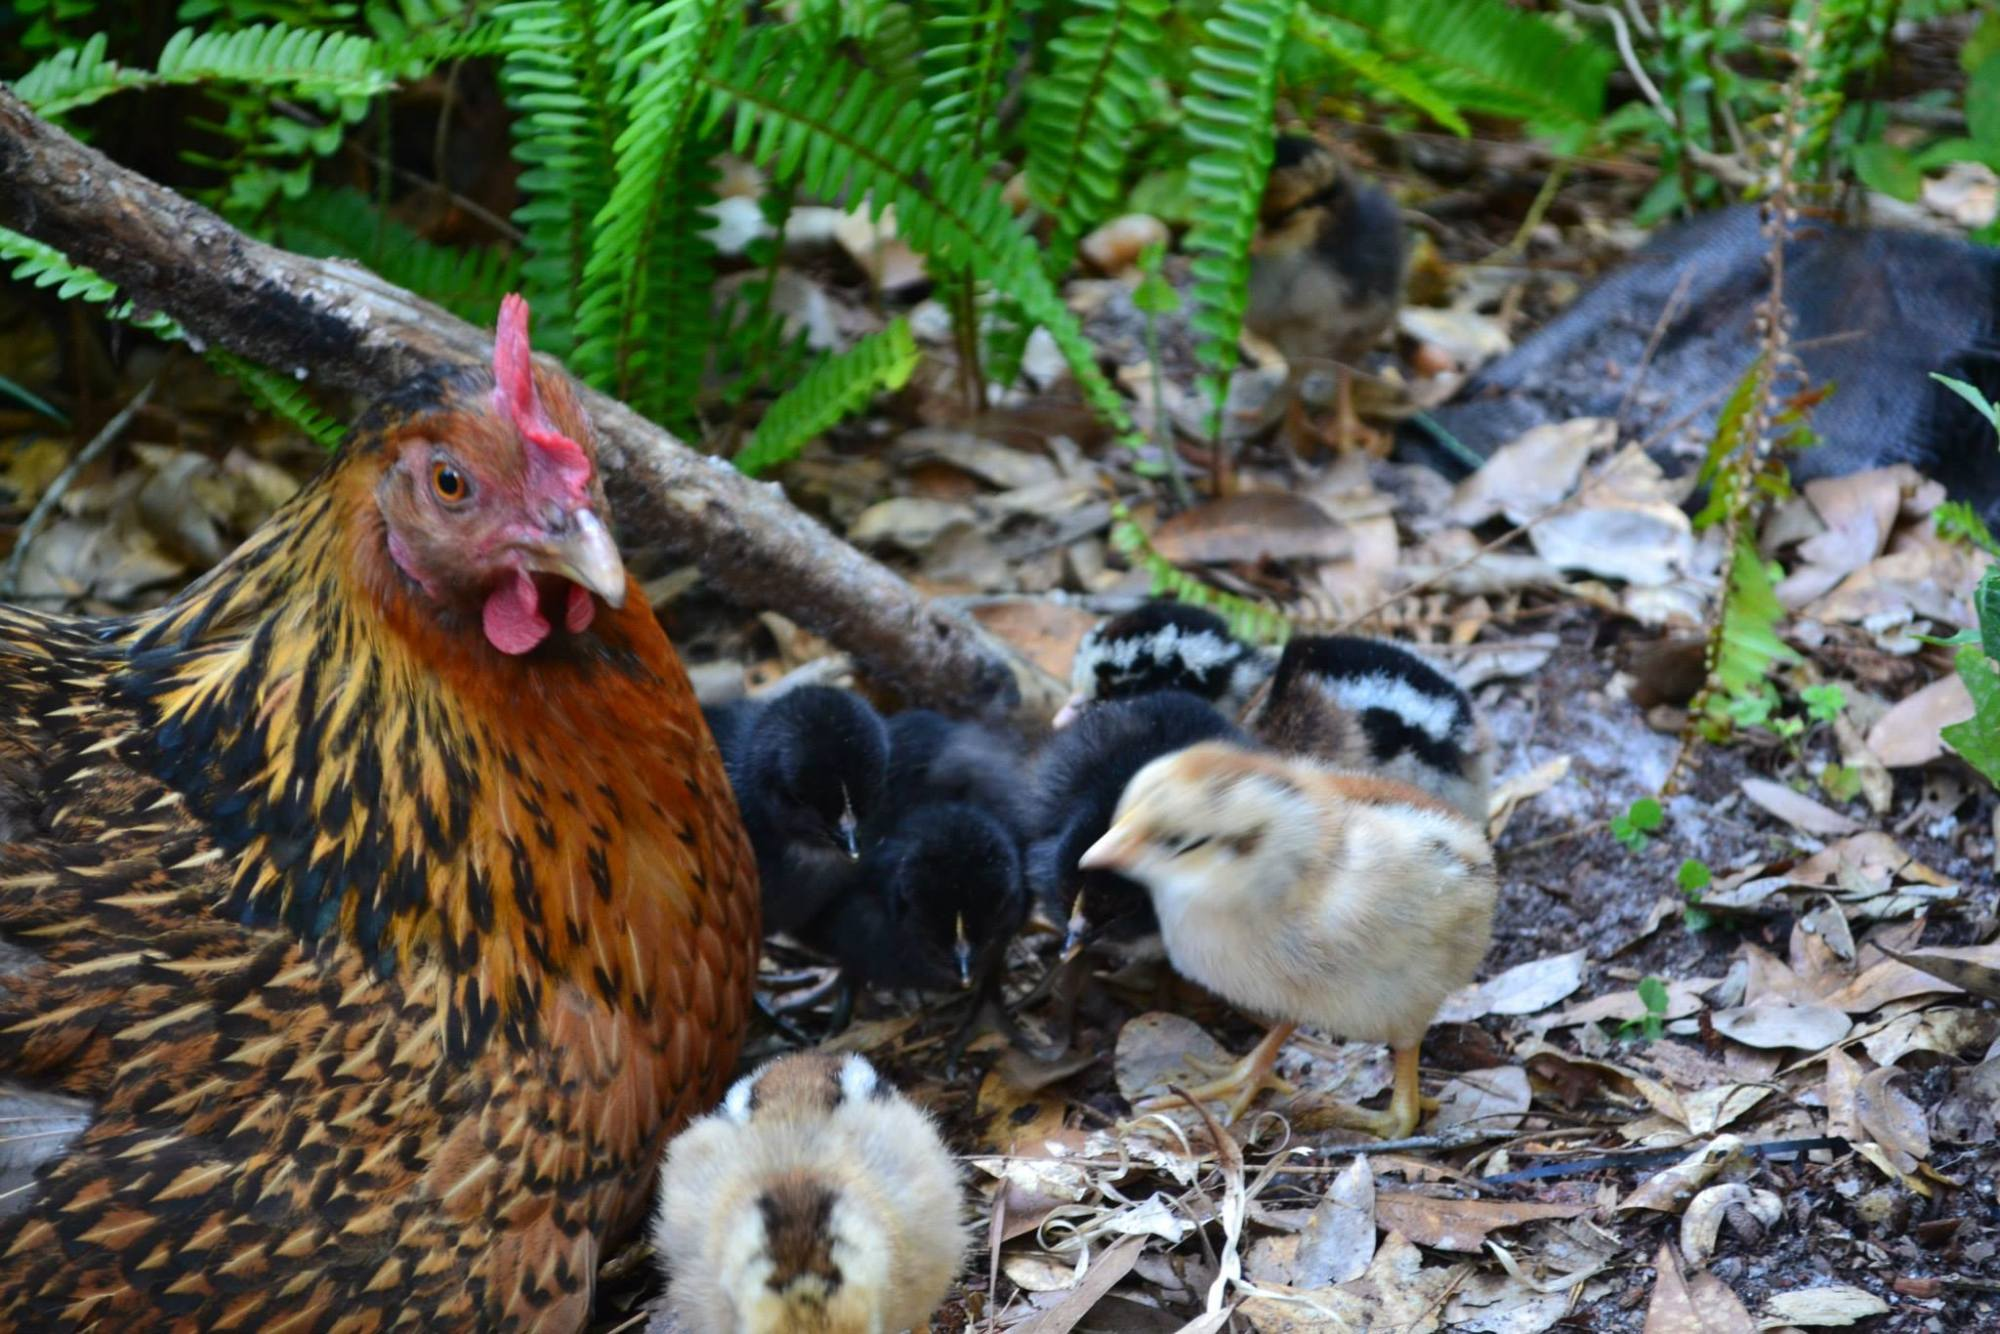 nova022's photos in Contest #3 Cutest Baby Fowl - 8th Annual BYC Easter Hatchalong